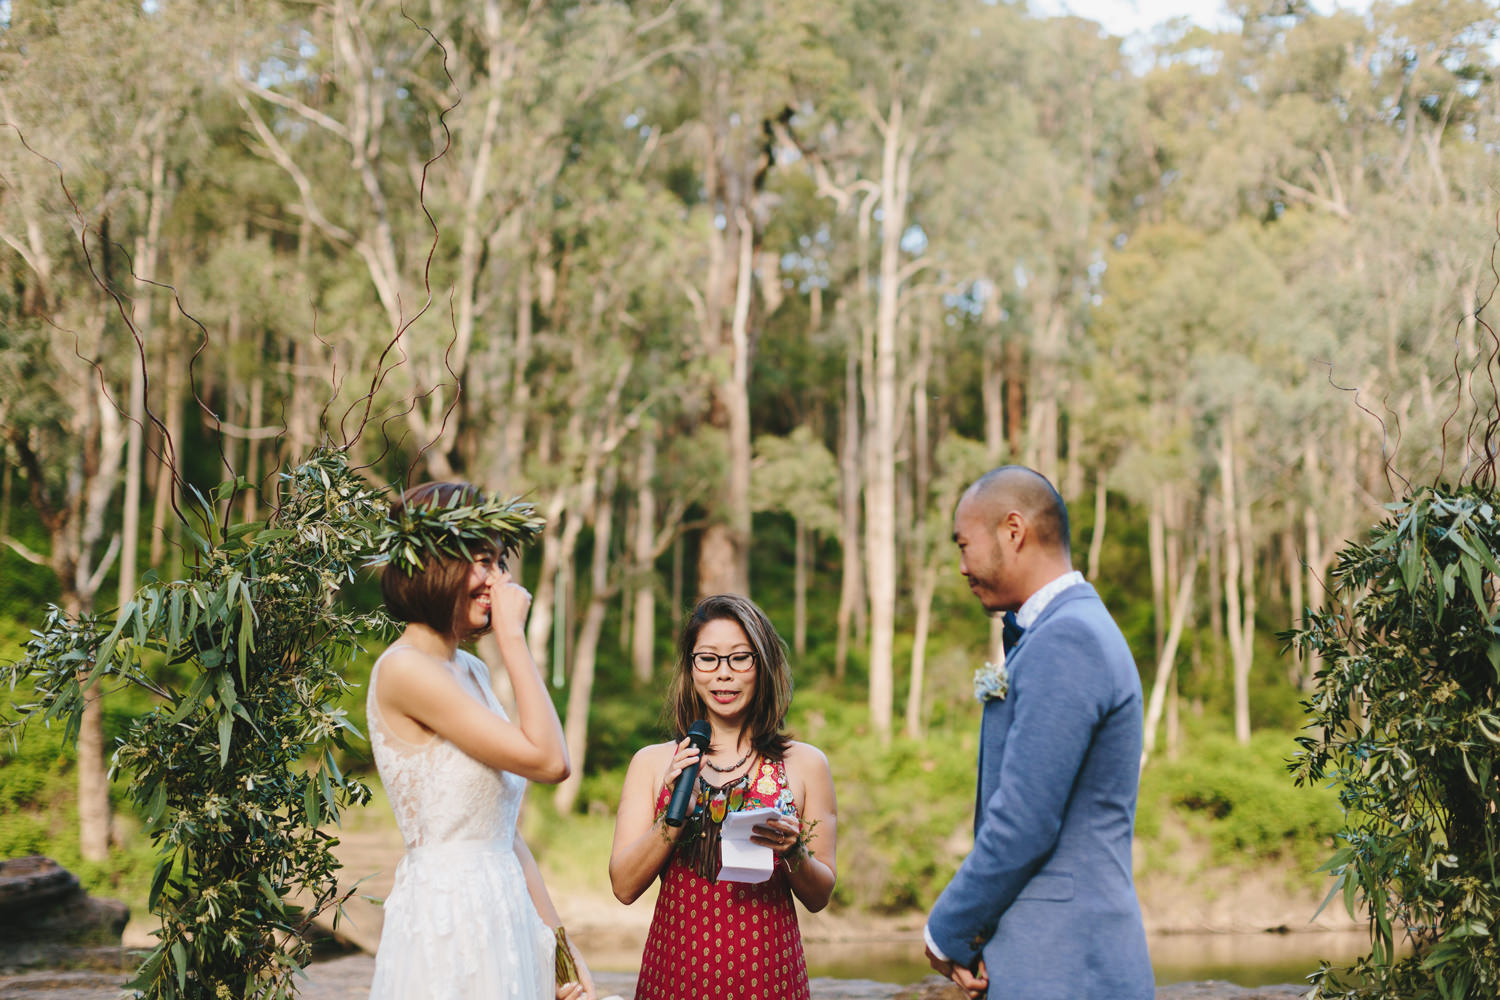 096-Barn_Wedding_Australia_Sam_Ting.jpg